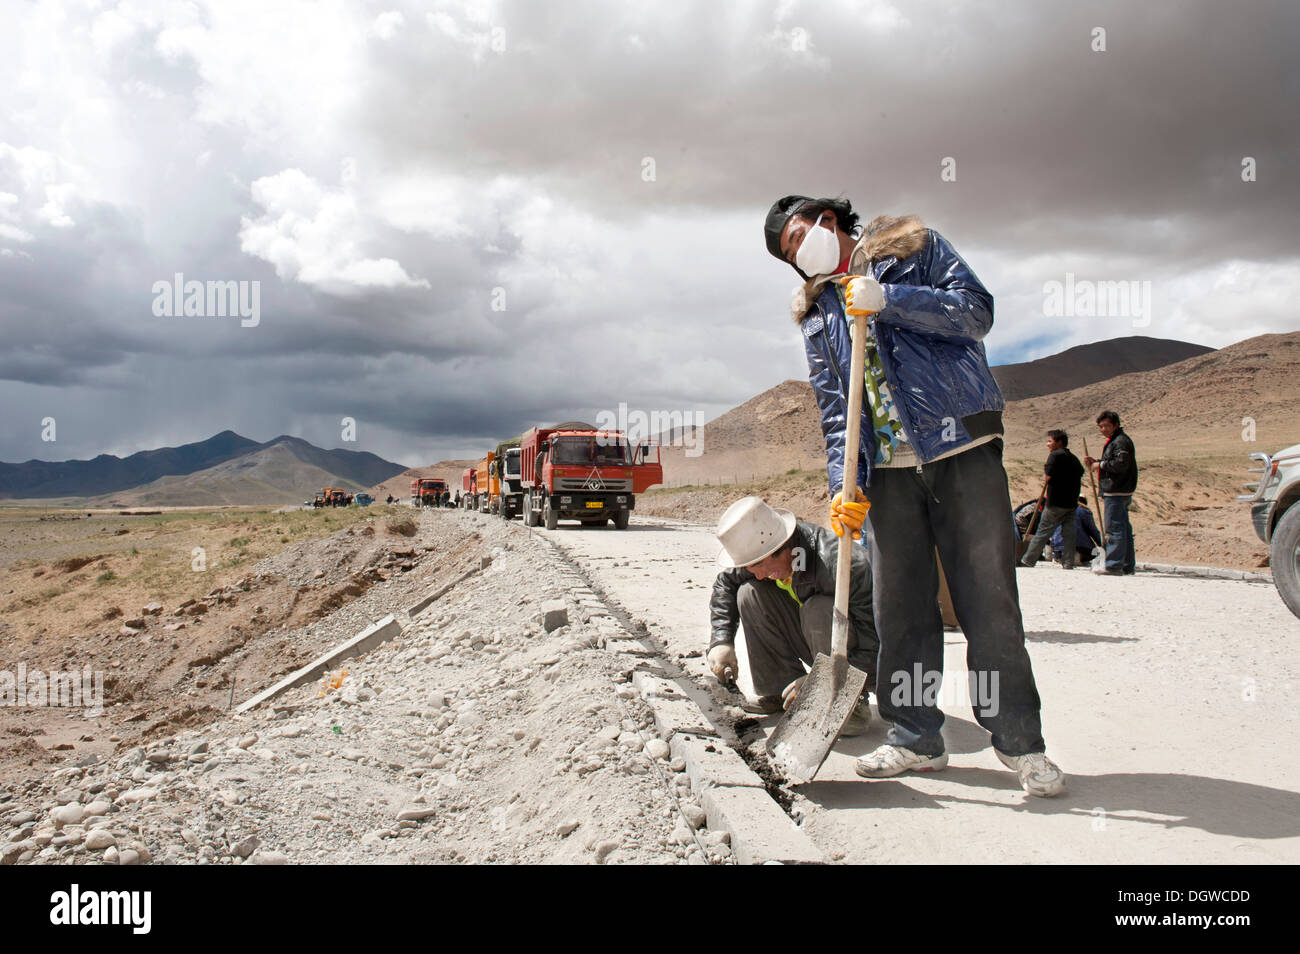 Road construction, Tibetan construction workers with shovels working on the G 219 road, China National Highway 219 - Stock Image